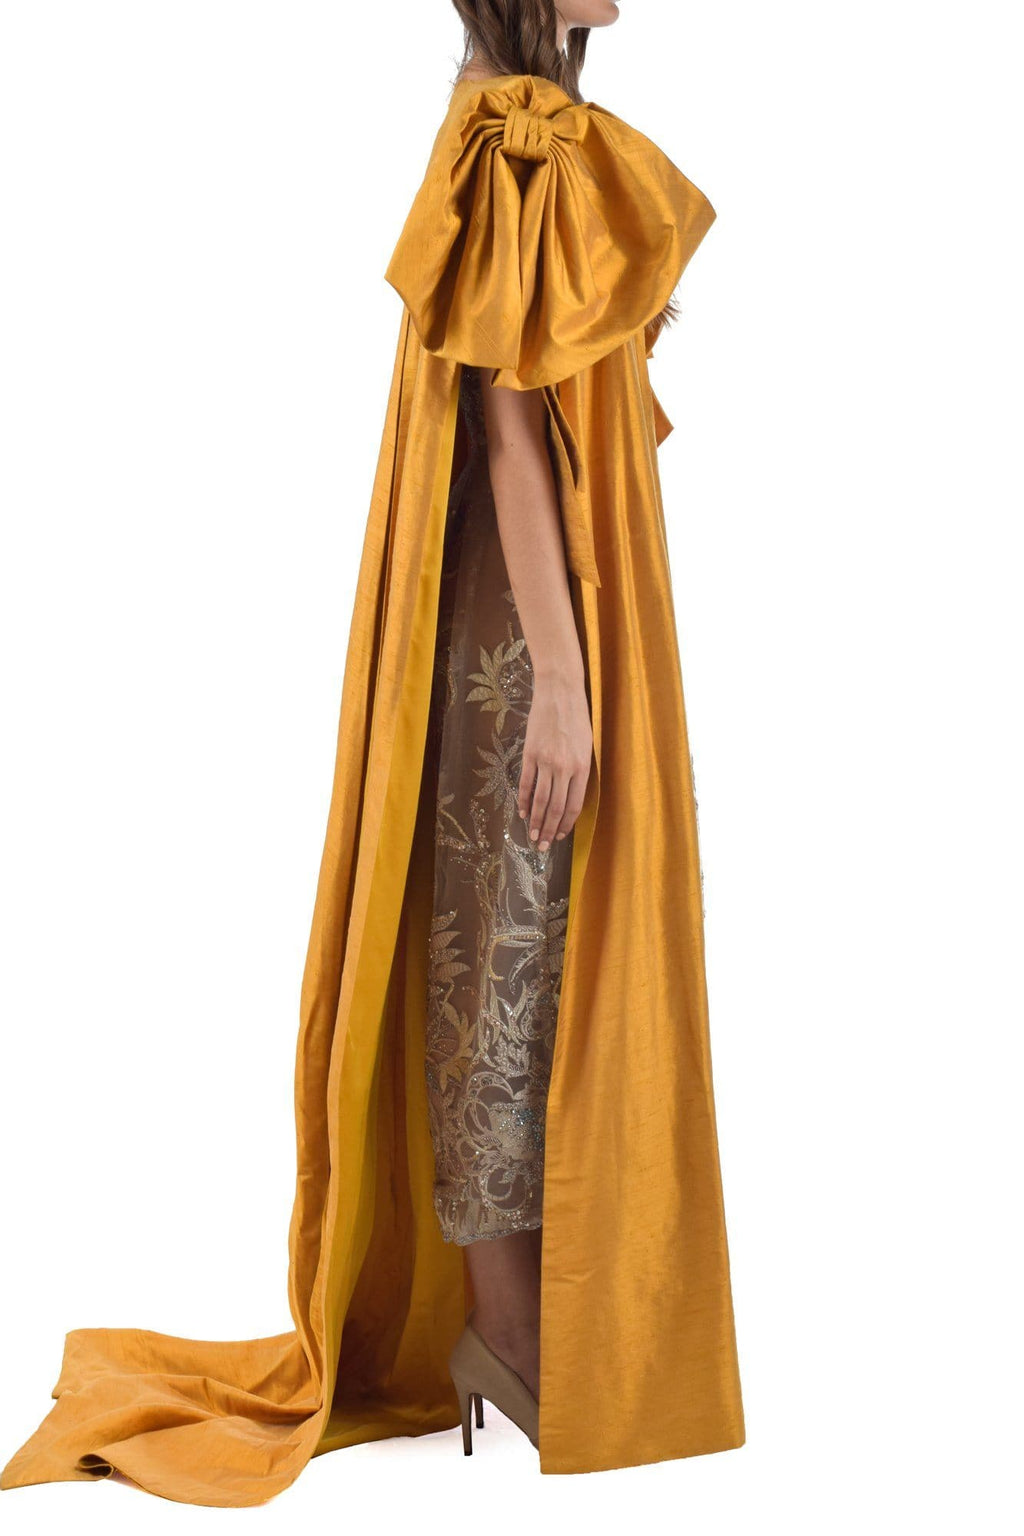 Clivia Fully Embroiderd Strapless Jumpsuit With Tuscany Yellow Bow Cape - BYTRIBUTE